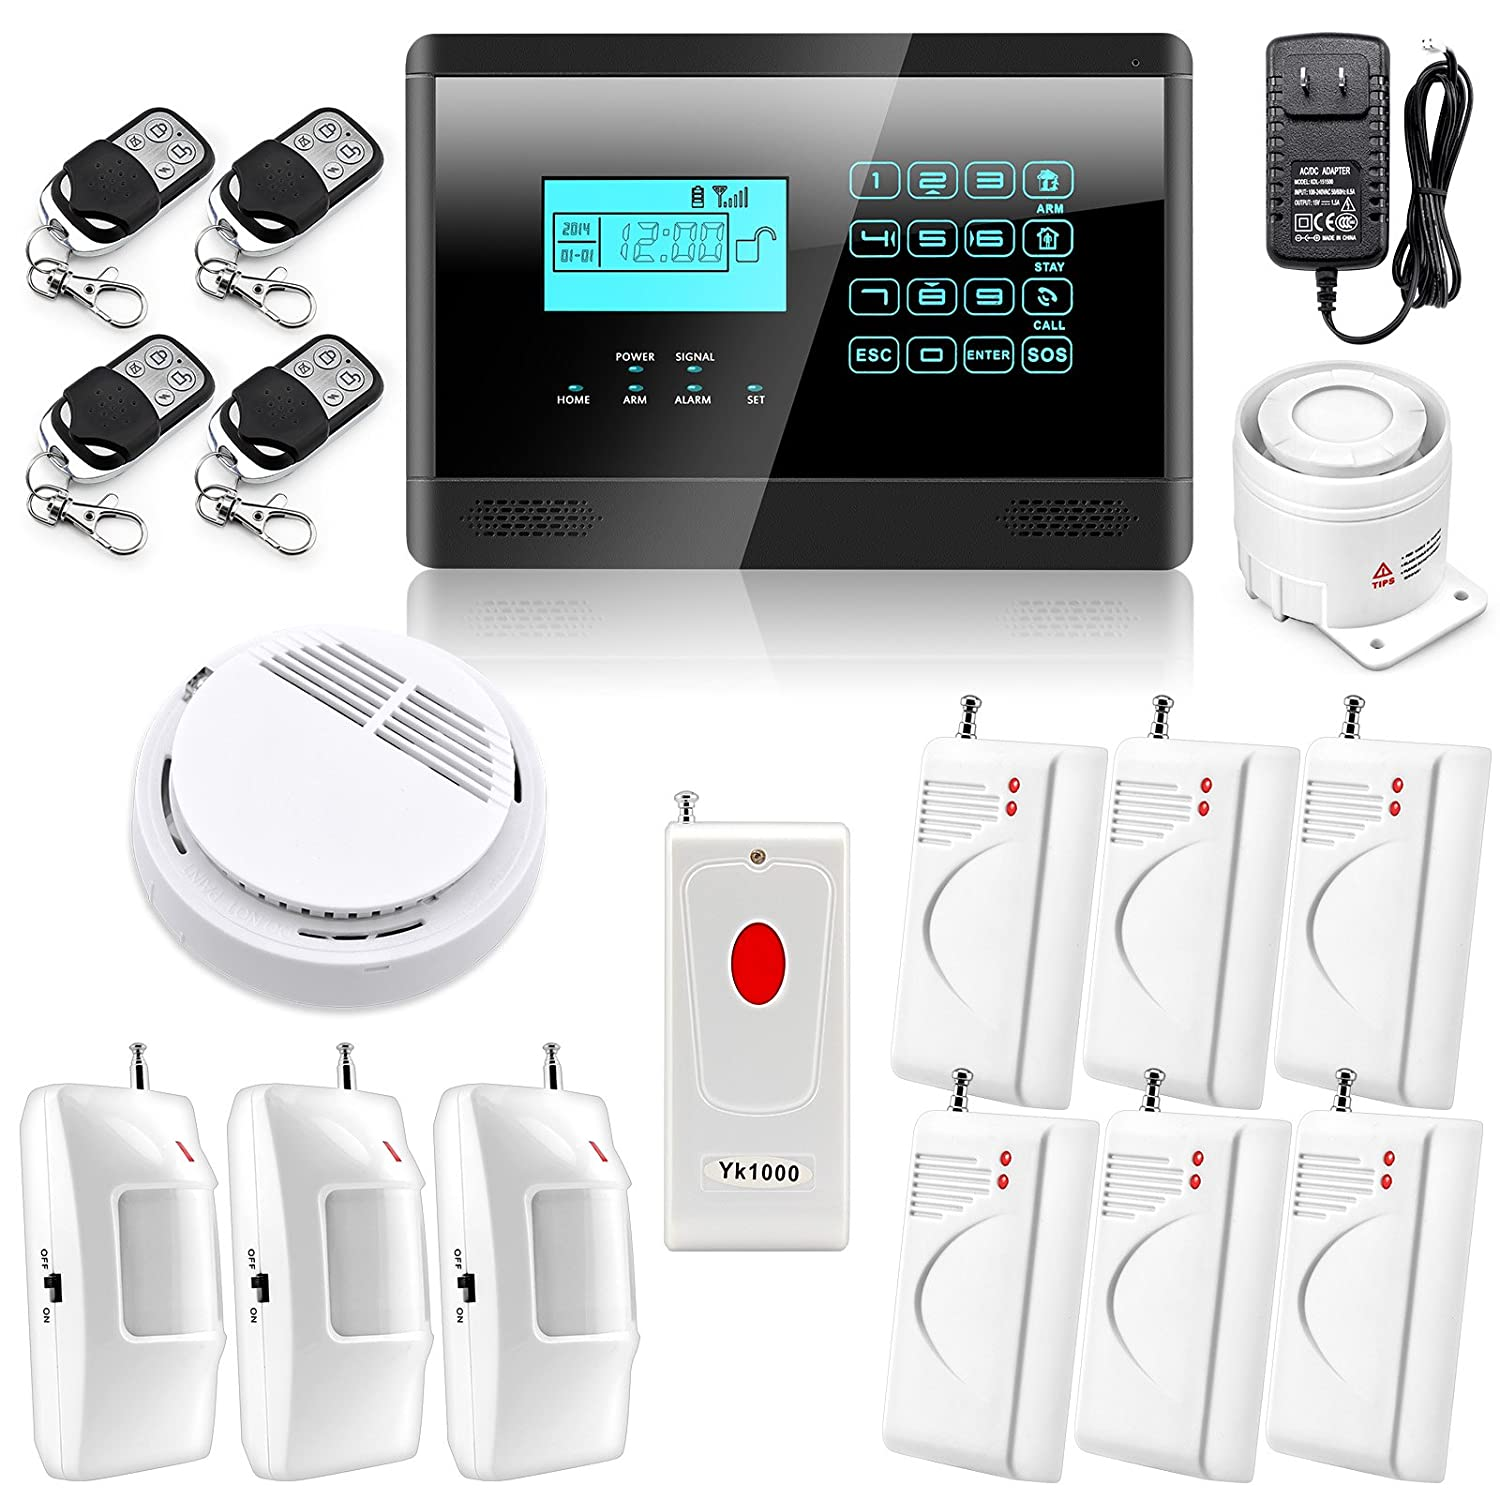 Wolf-Guard Wireless Autodial Smart Home House Security Burglar Alarm System